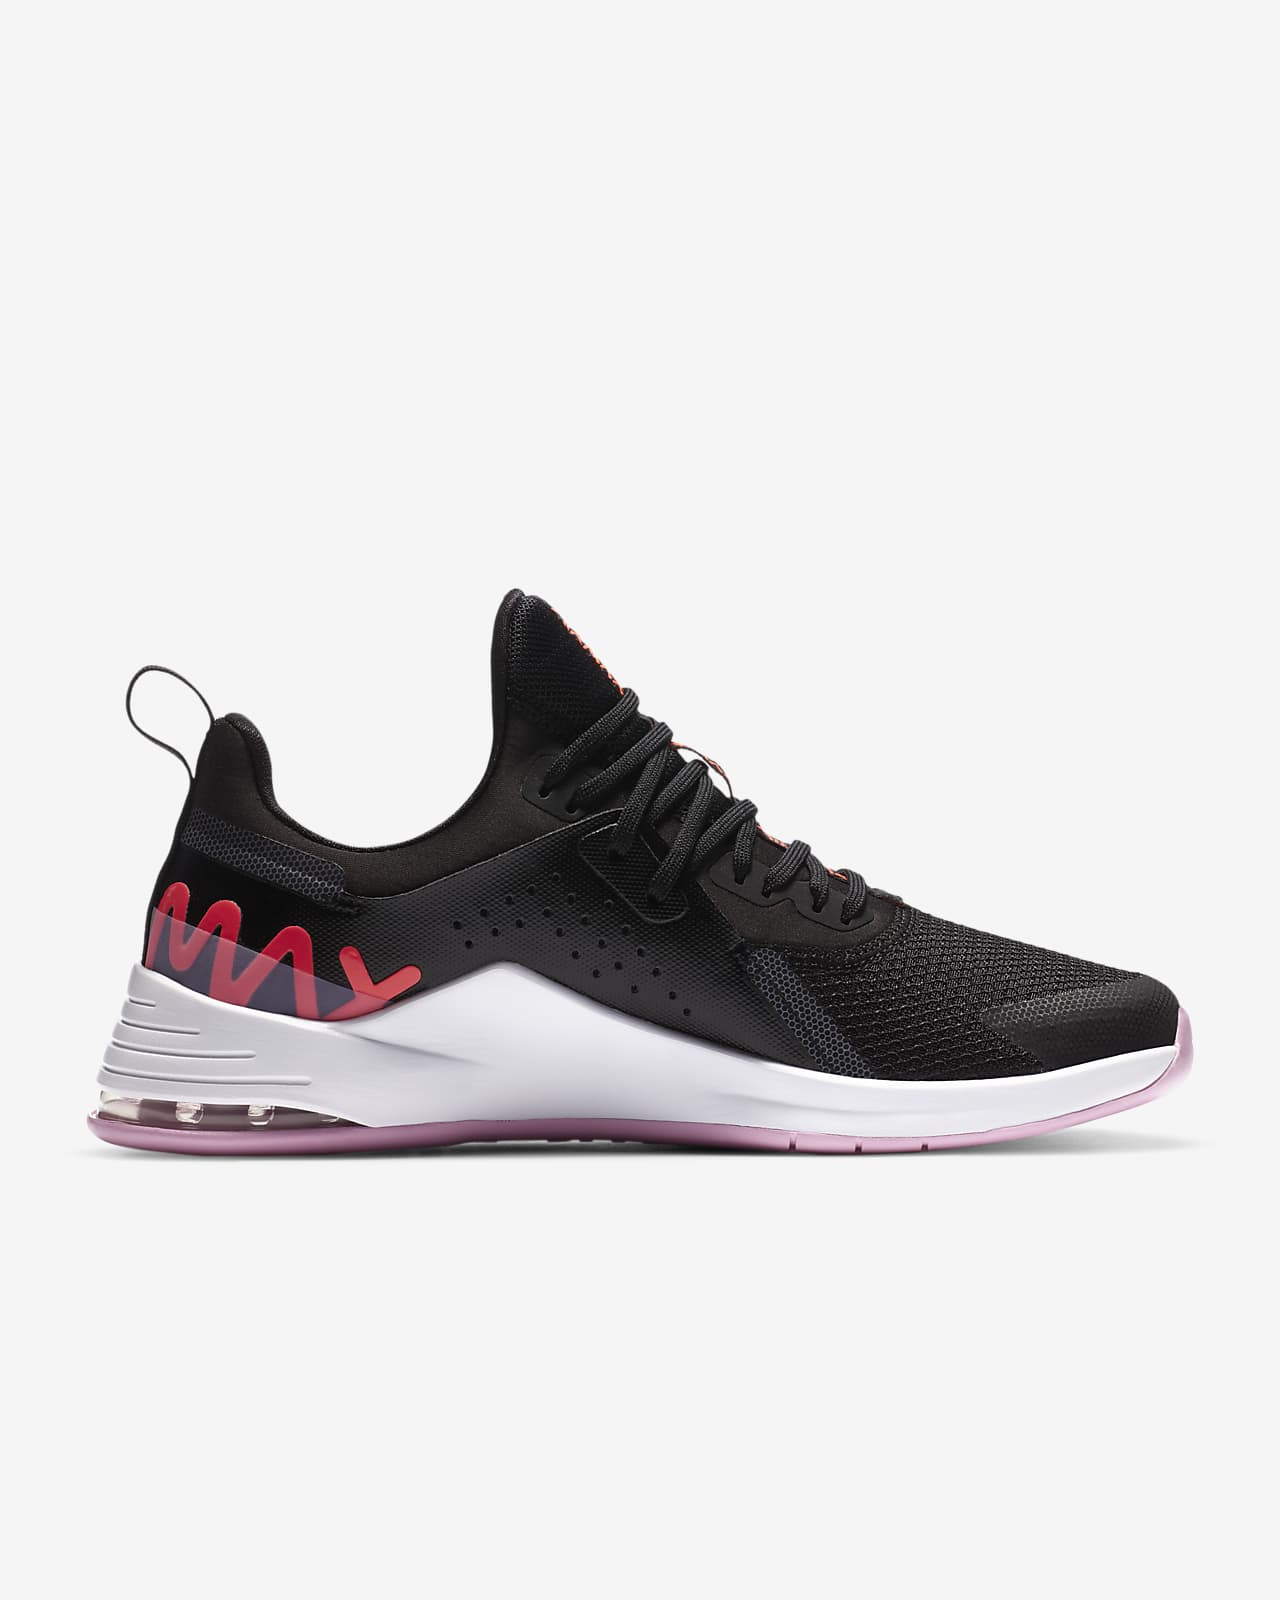 Nike Air Max Bella TR 3 - Black/Flash Crimson-Beyond Pink-White